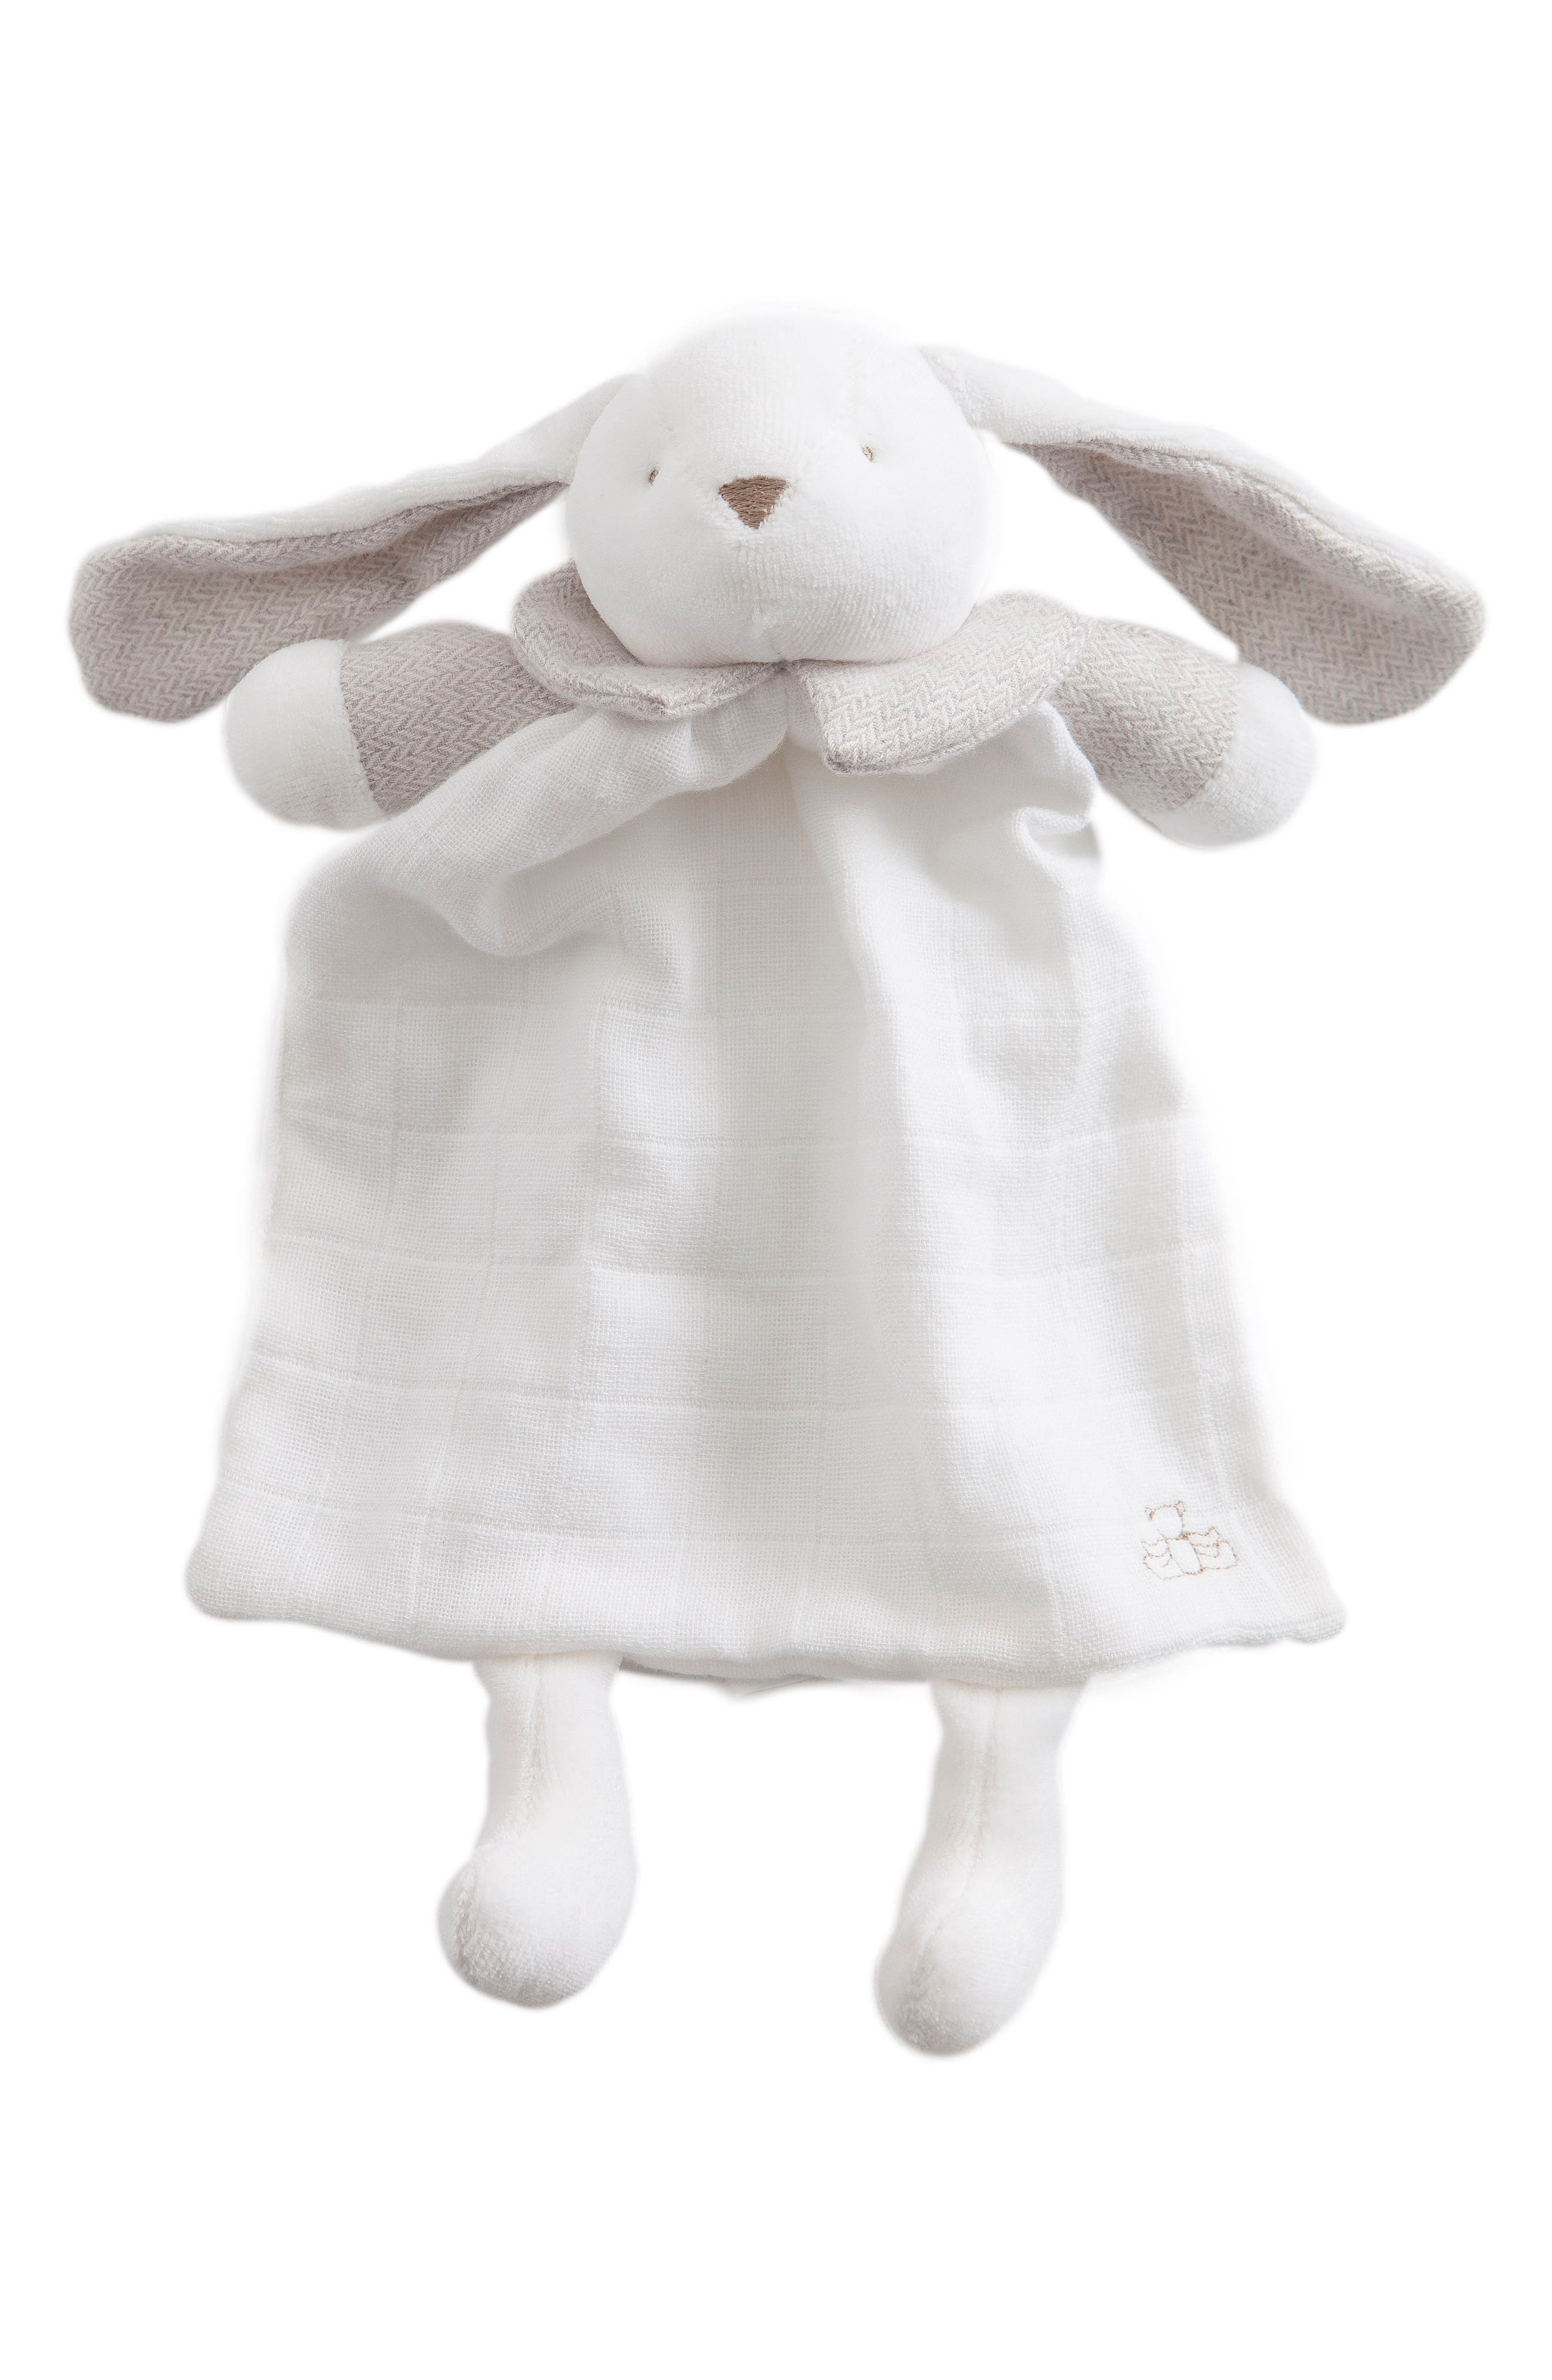 Pamplemousse Peluches Rabbit Lovey Toy